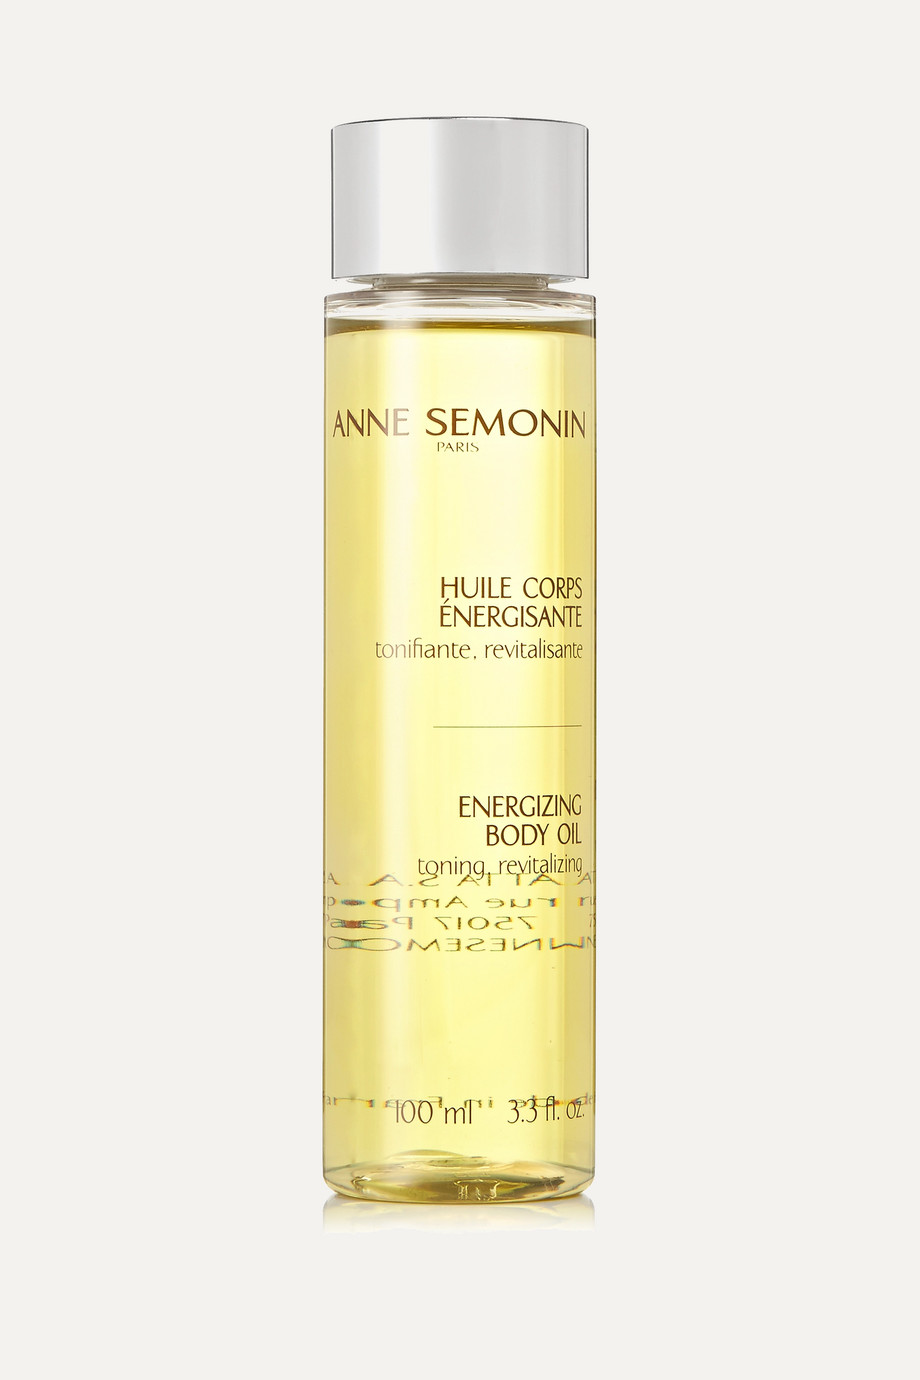 Anne Semonin Energizing Body Oil, 100ml